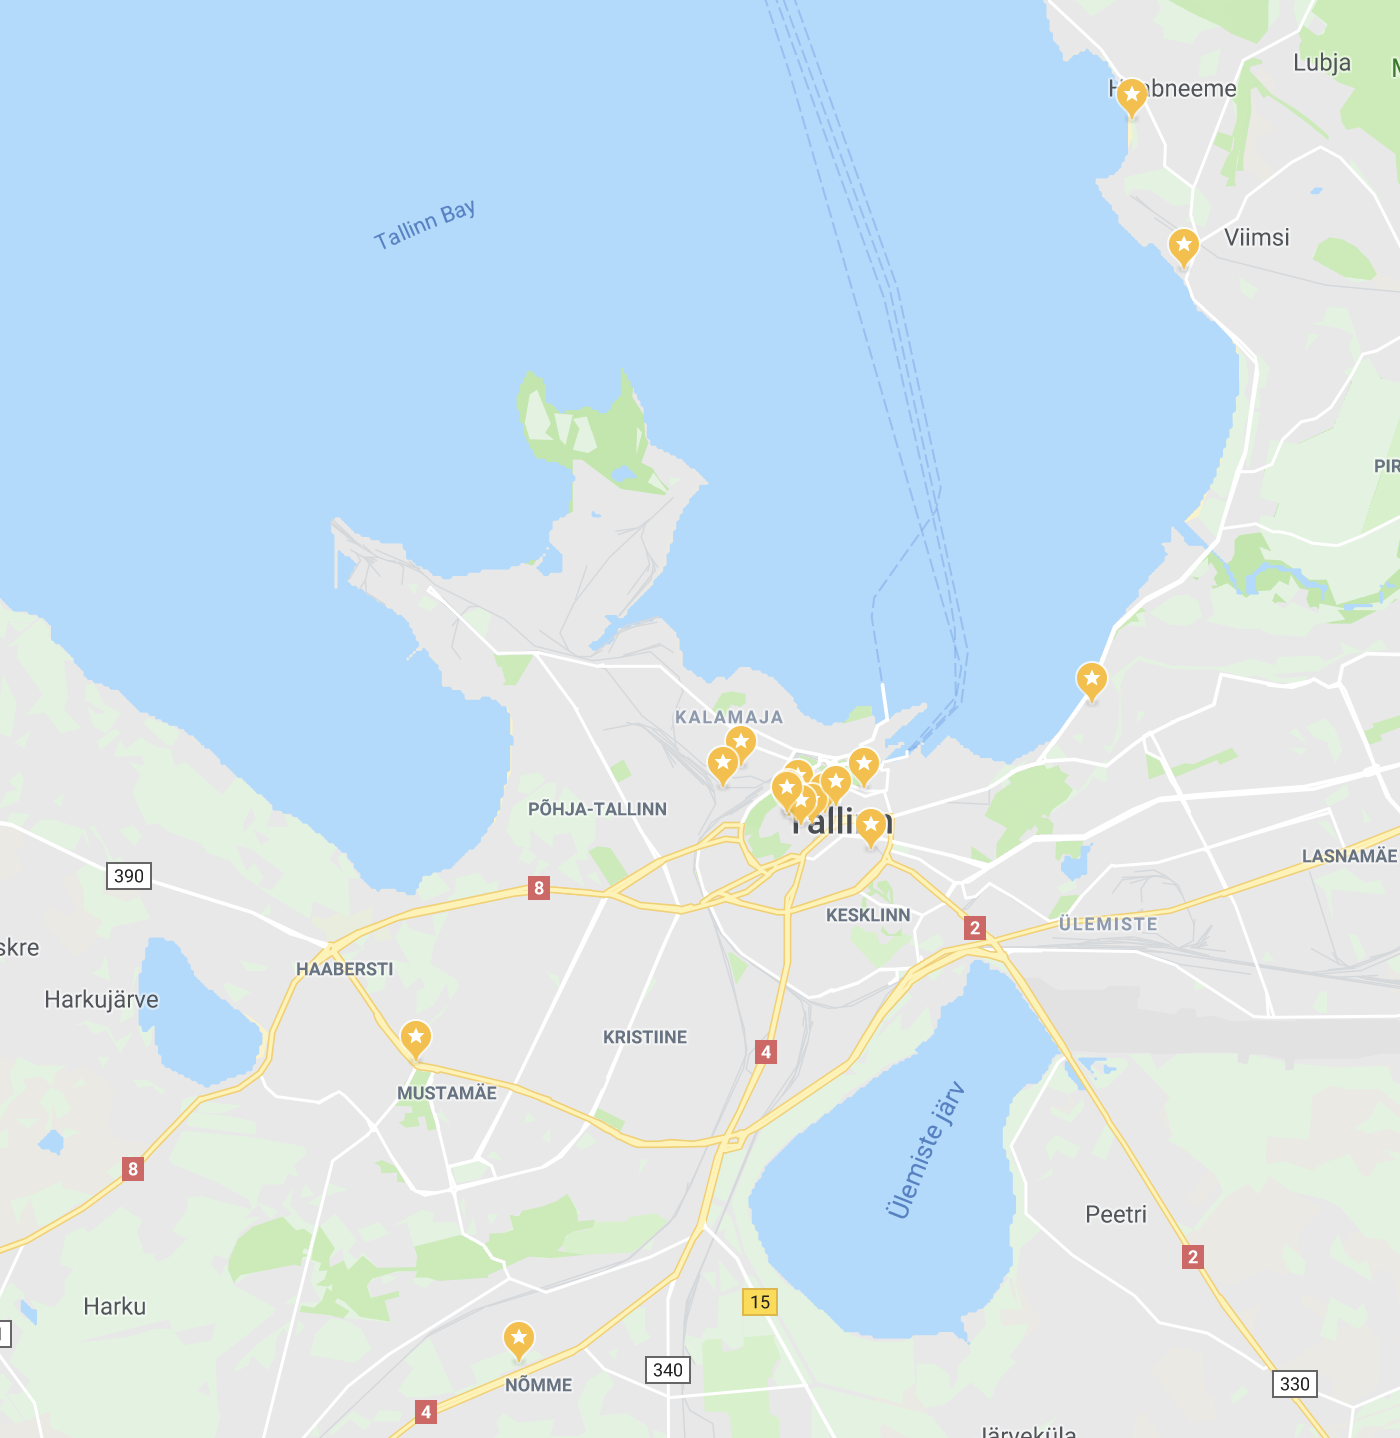 Foodie hotspots in Tallinn map, tallinn restaurants, things to do in tallinn, estonia restaurants